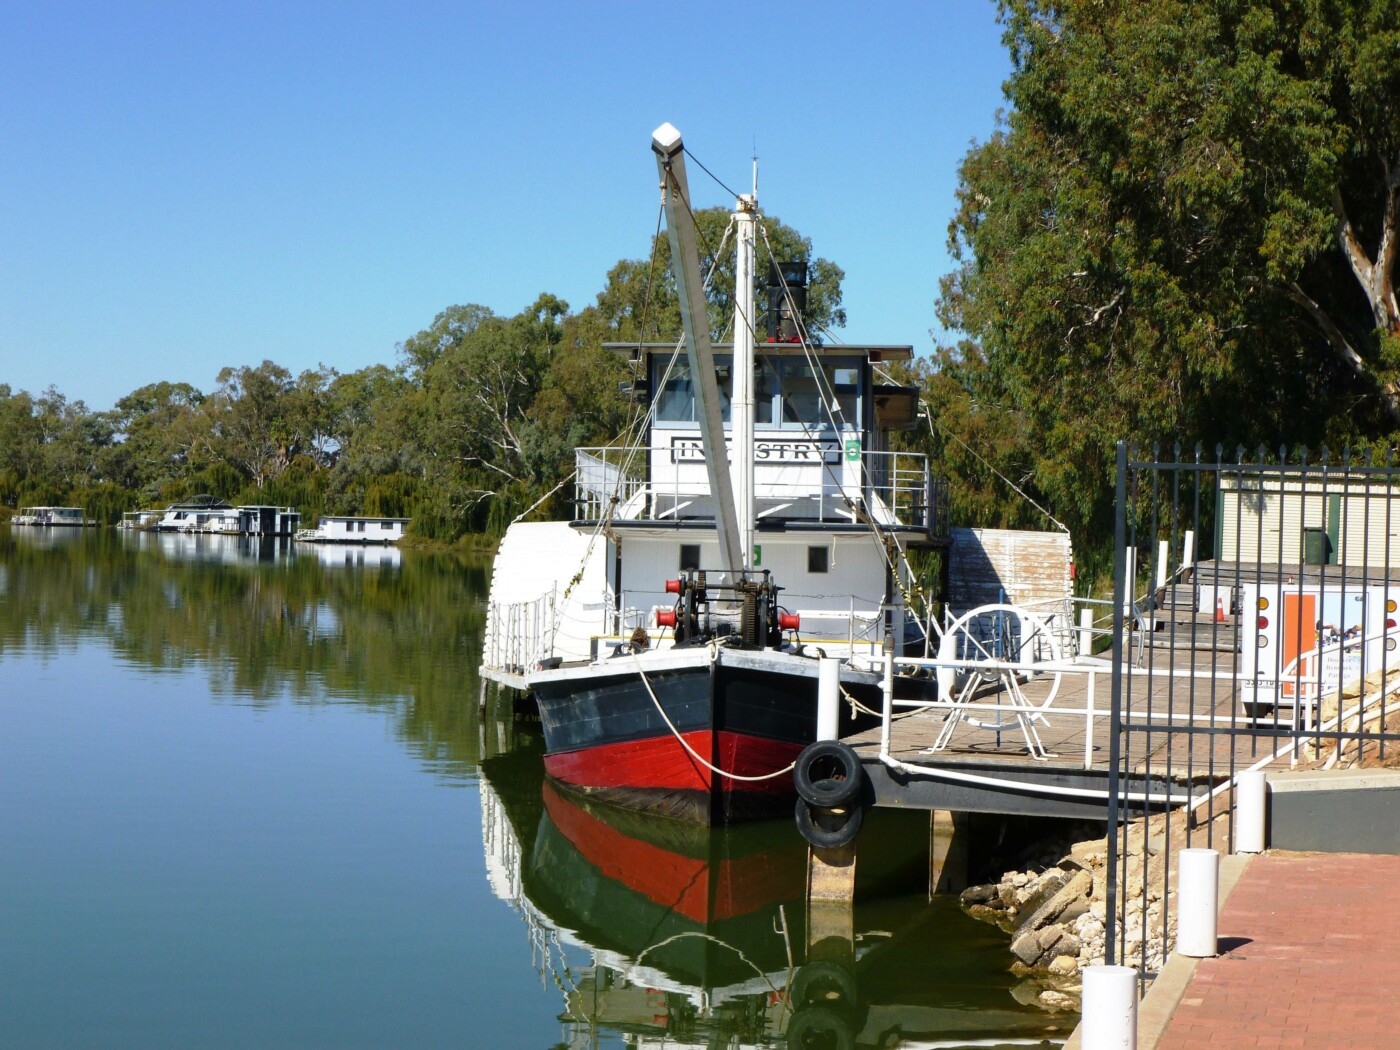 PS industry on the Renmark river bank 2020